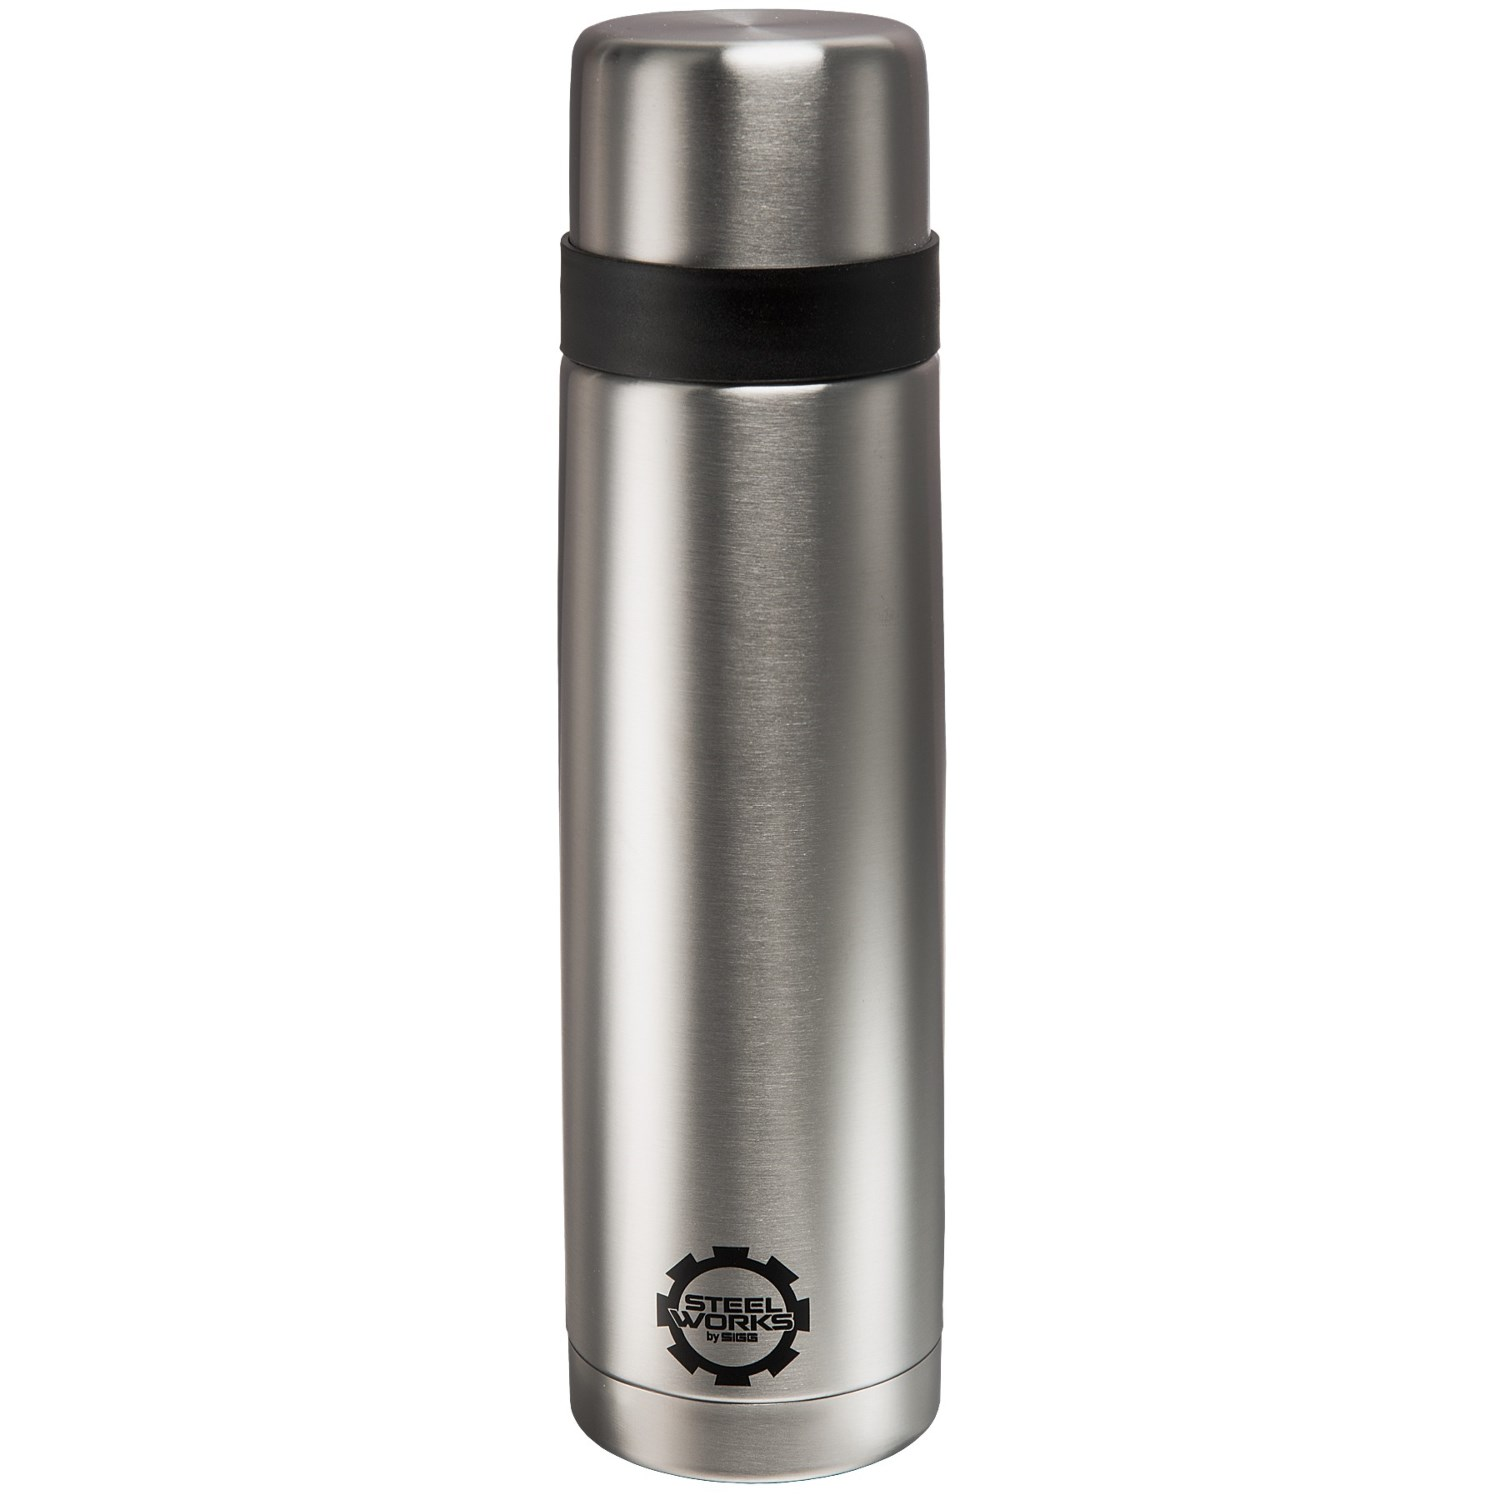 Steelworks Sigg Thermos Steelworks by Sigg